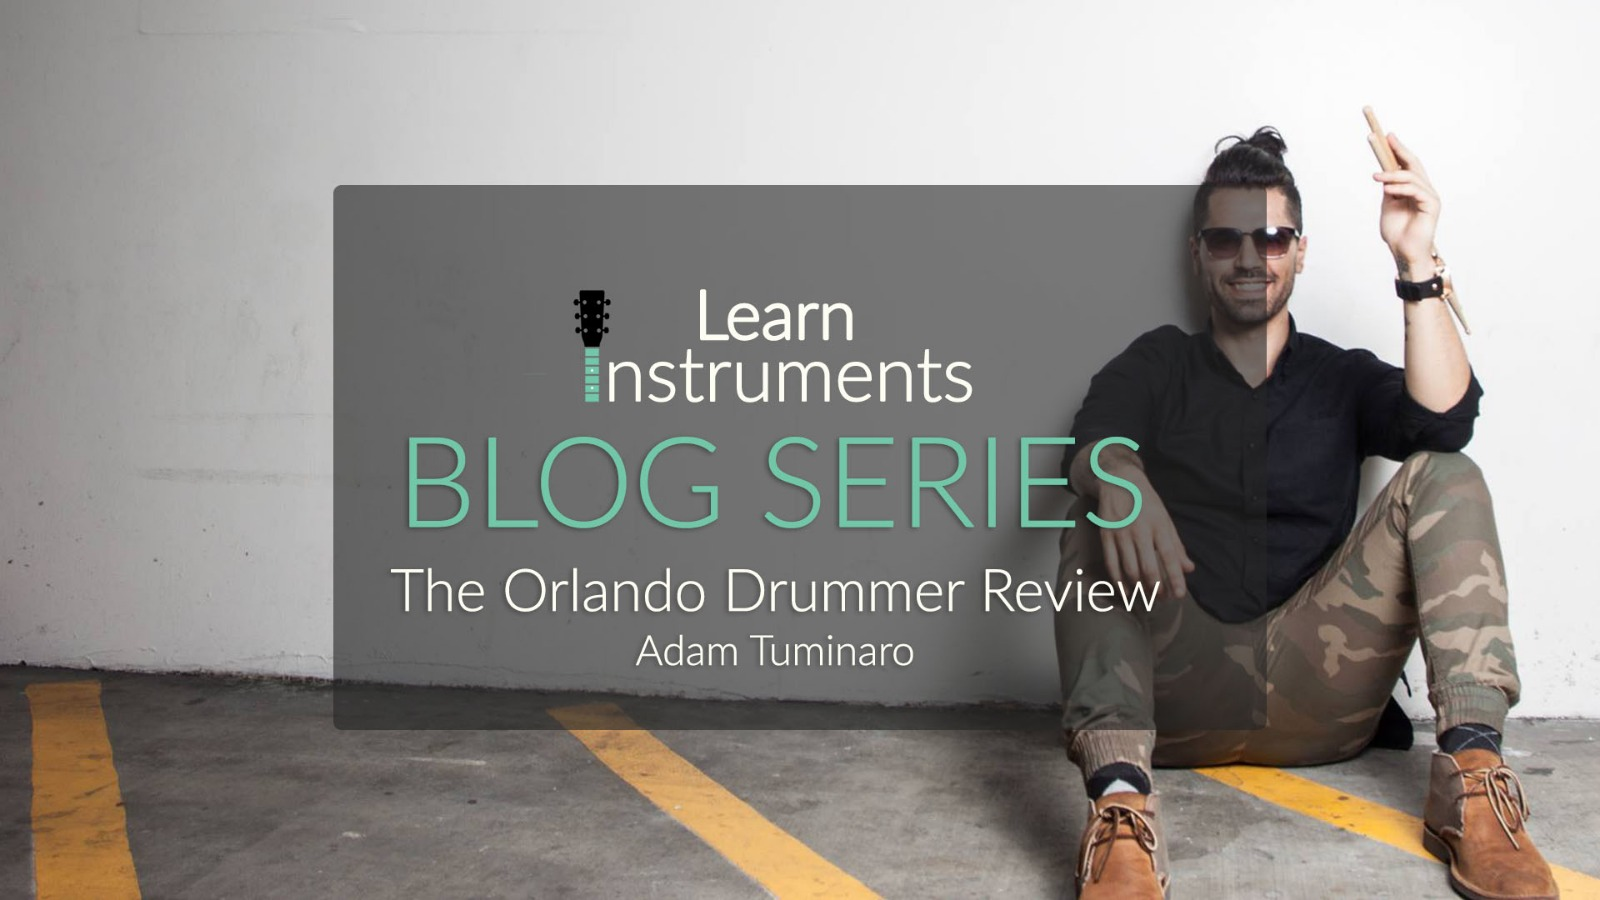 Adam Tuminaro | The Orlando Drummer